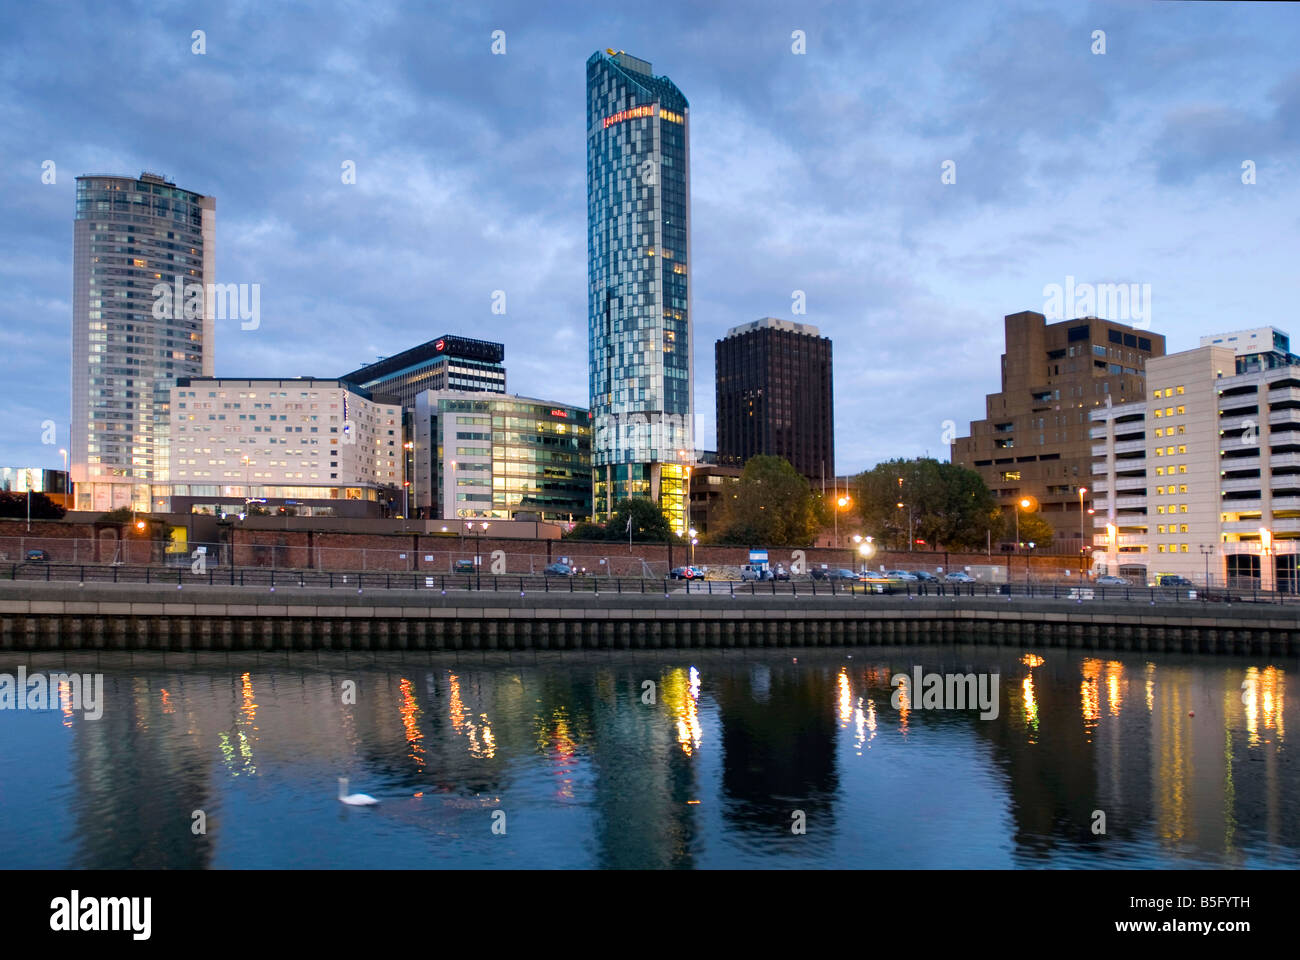 Liverpool modern developments Beetham Tower in the centre viewed across the Princes Dock with the Radisson hotel - Stock Image